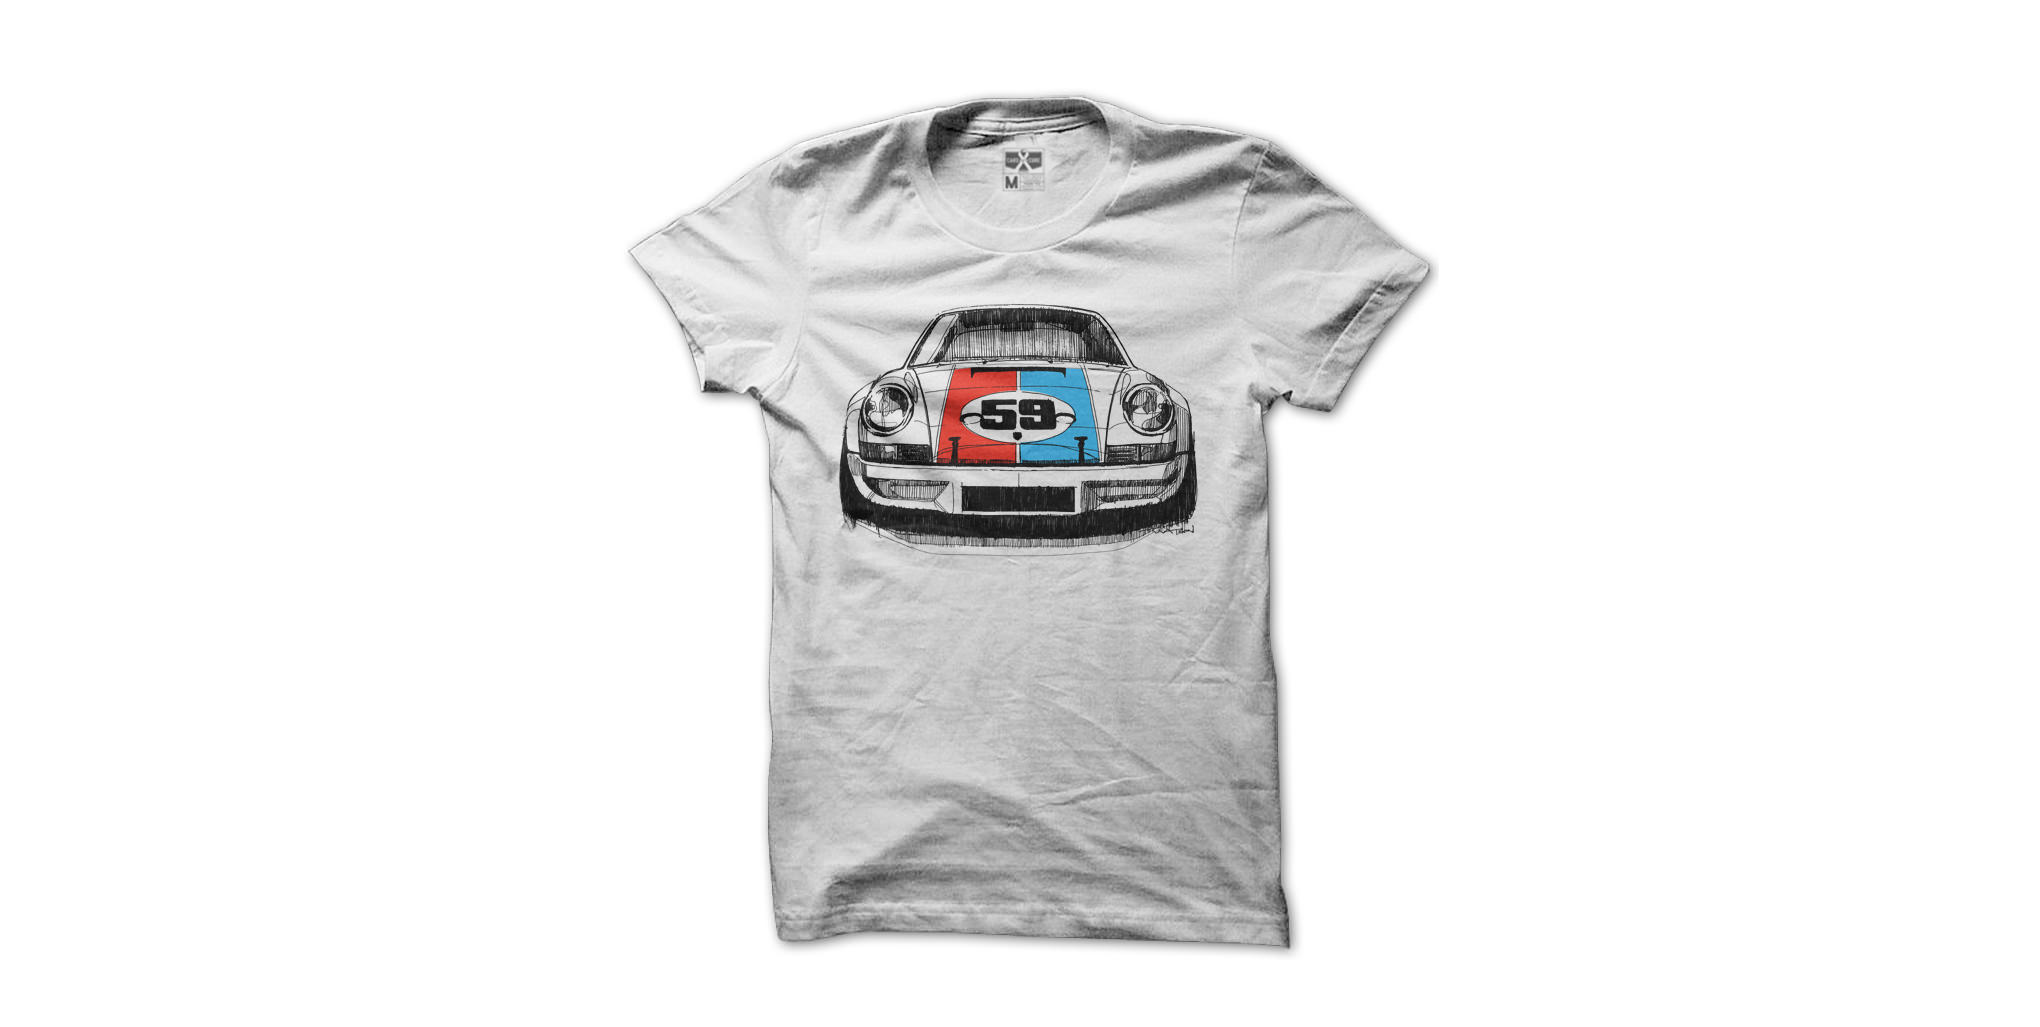 porsche 911 rsr tee by cars for a cure. Black Bedroom Furniture Sets. Home Design Ideas